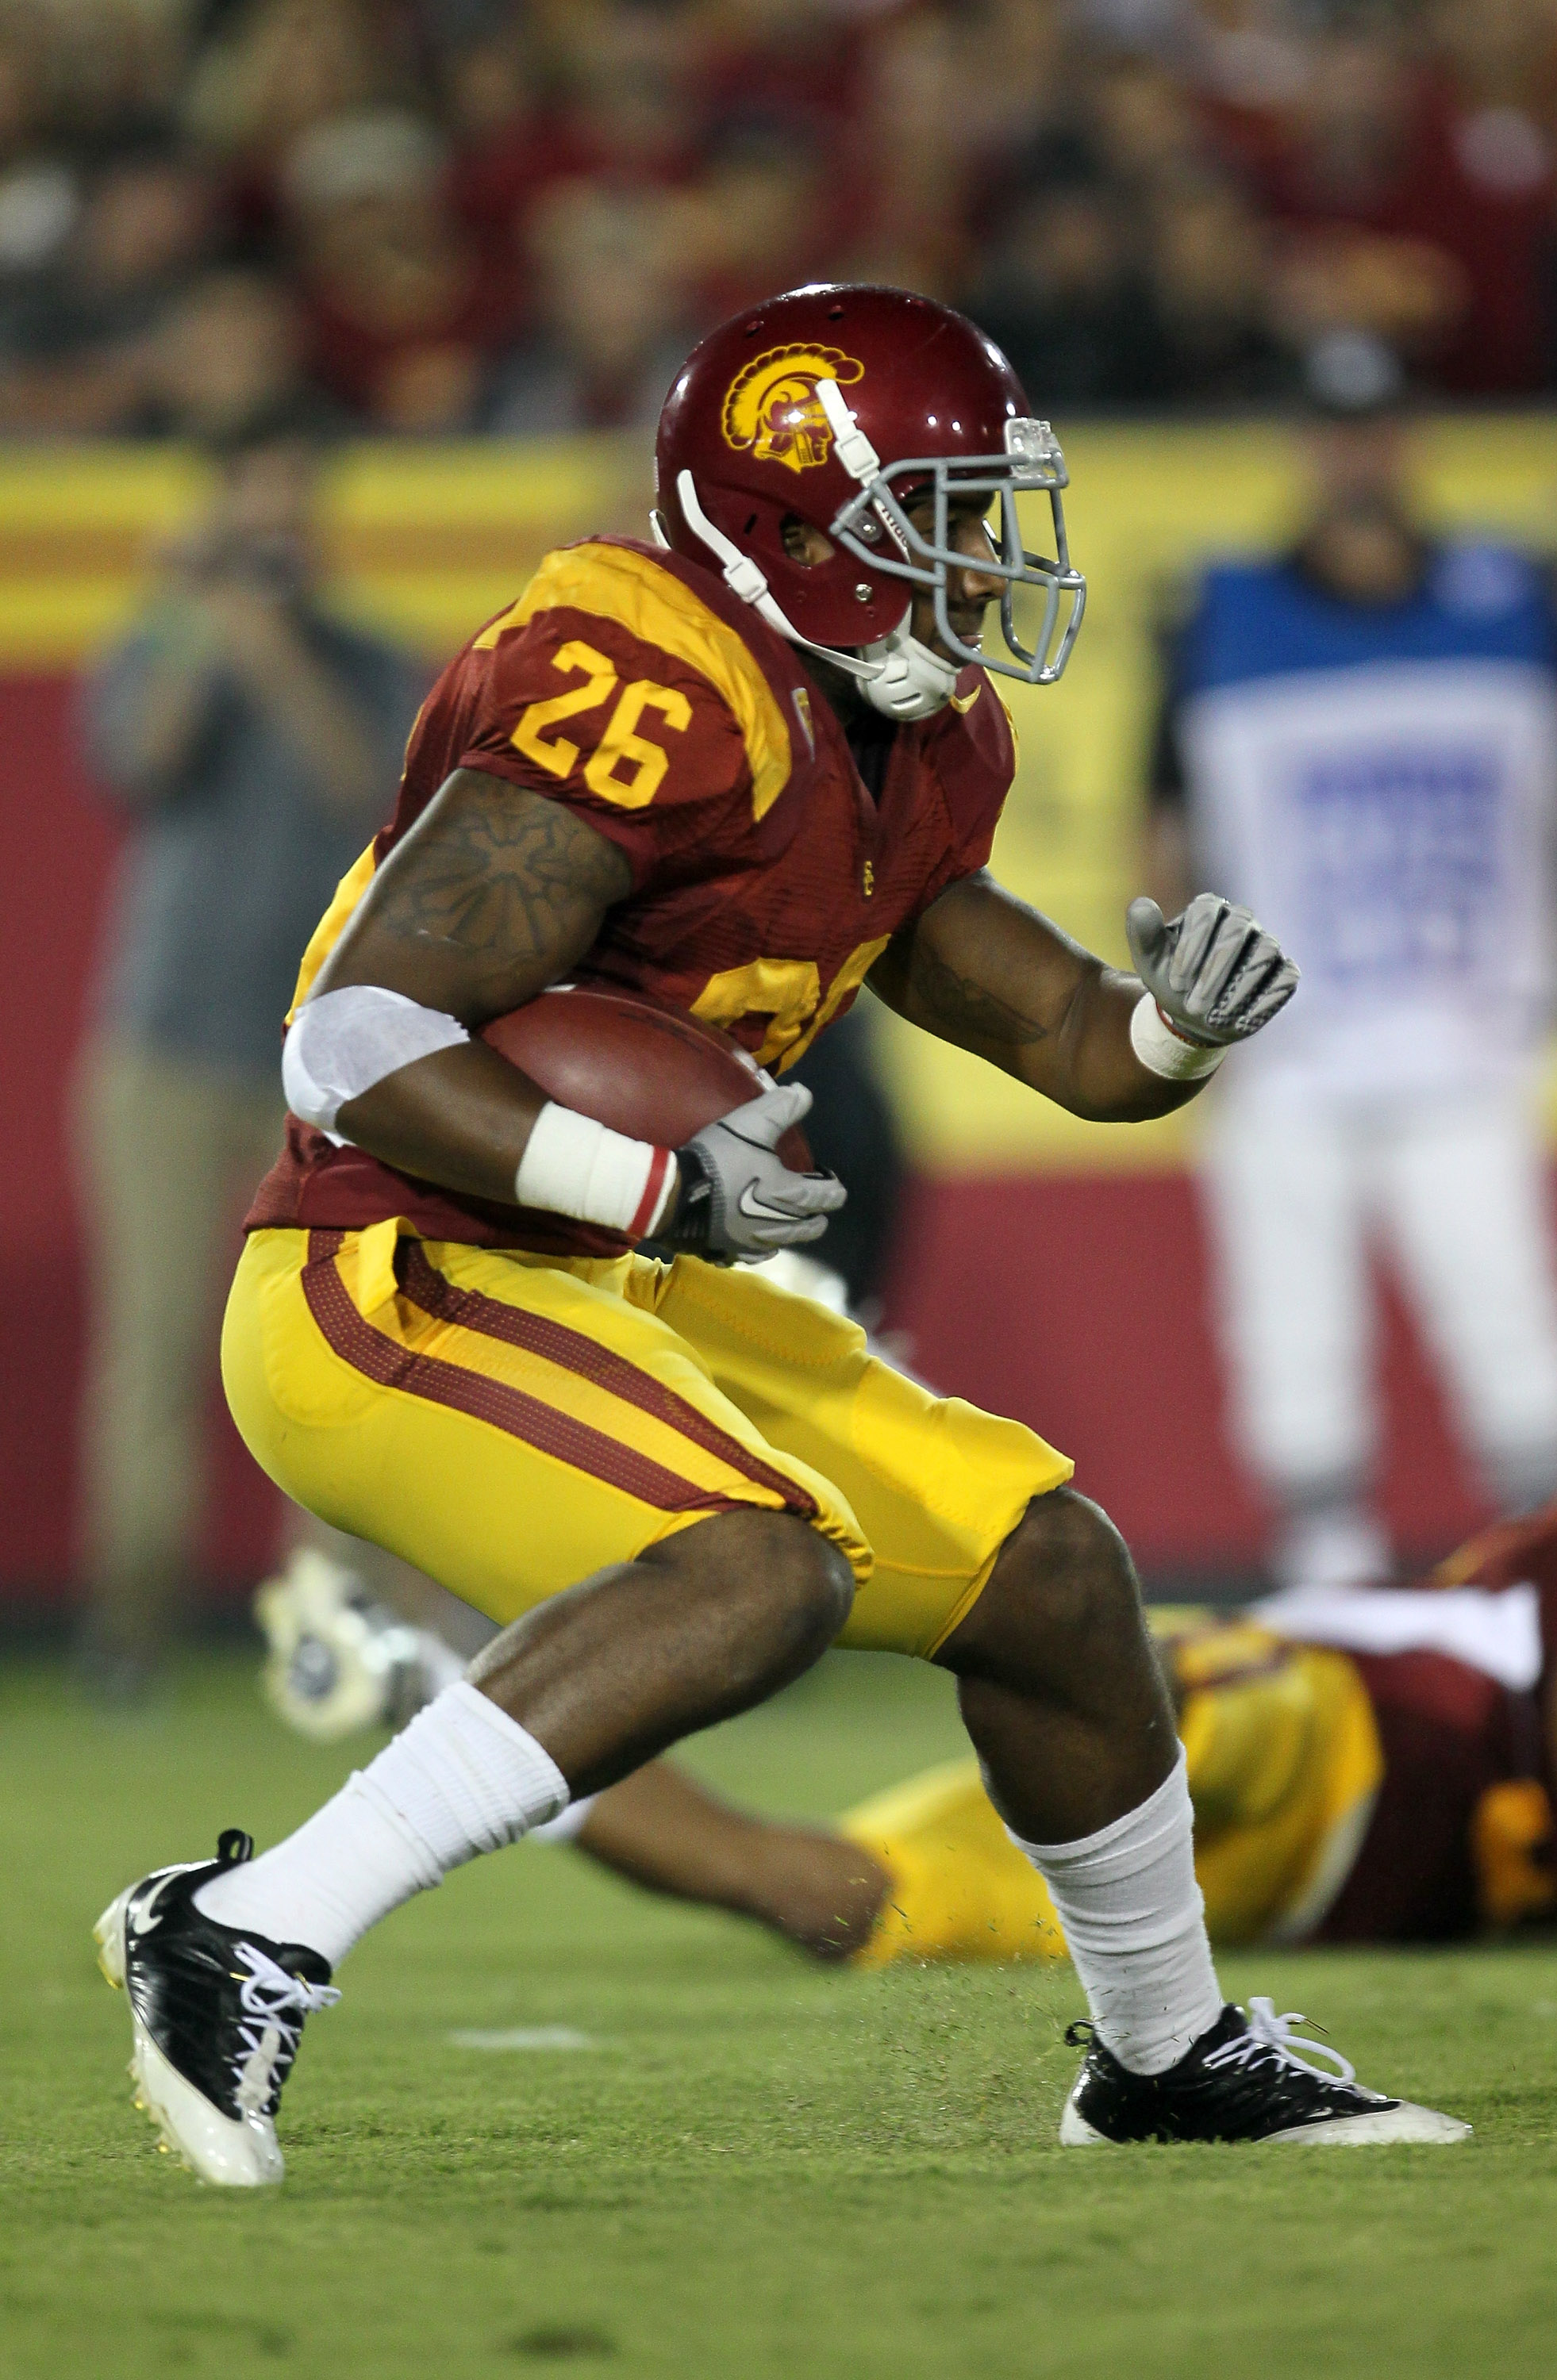 LOS ANGELES, CA - SEPTEMBER 11:  Running back Marc Tyler #26 of the USC Trojans carries the ball against the Virginia Cavaliers at Los Angeles Memorial Coliseum on September 11, 2010 in Los Angeles, California. USC won 17-14.  (Photo by Stephen Dunn/Getty